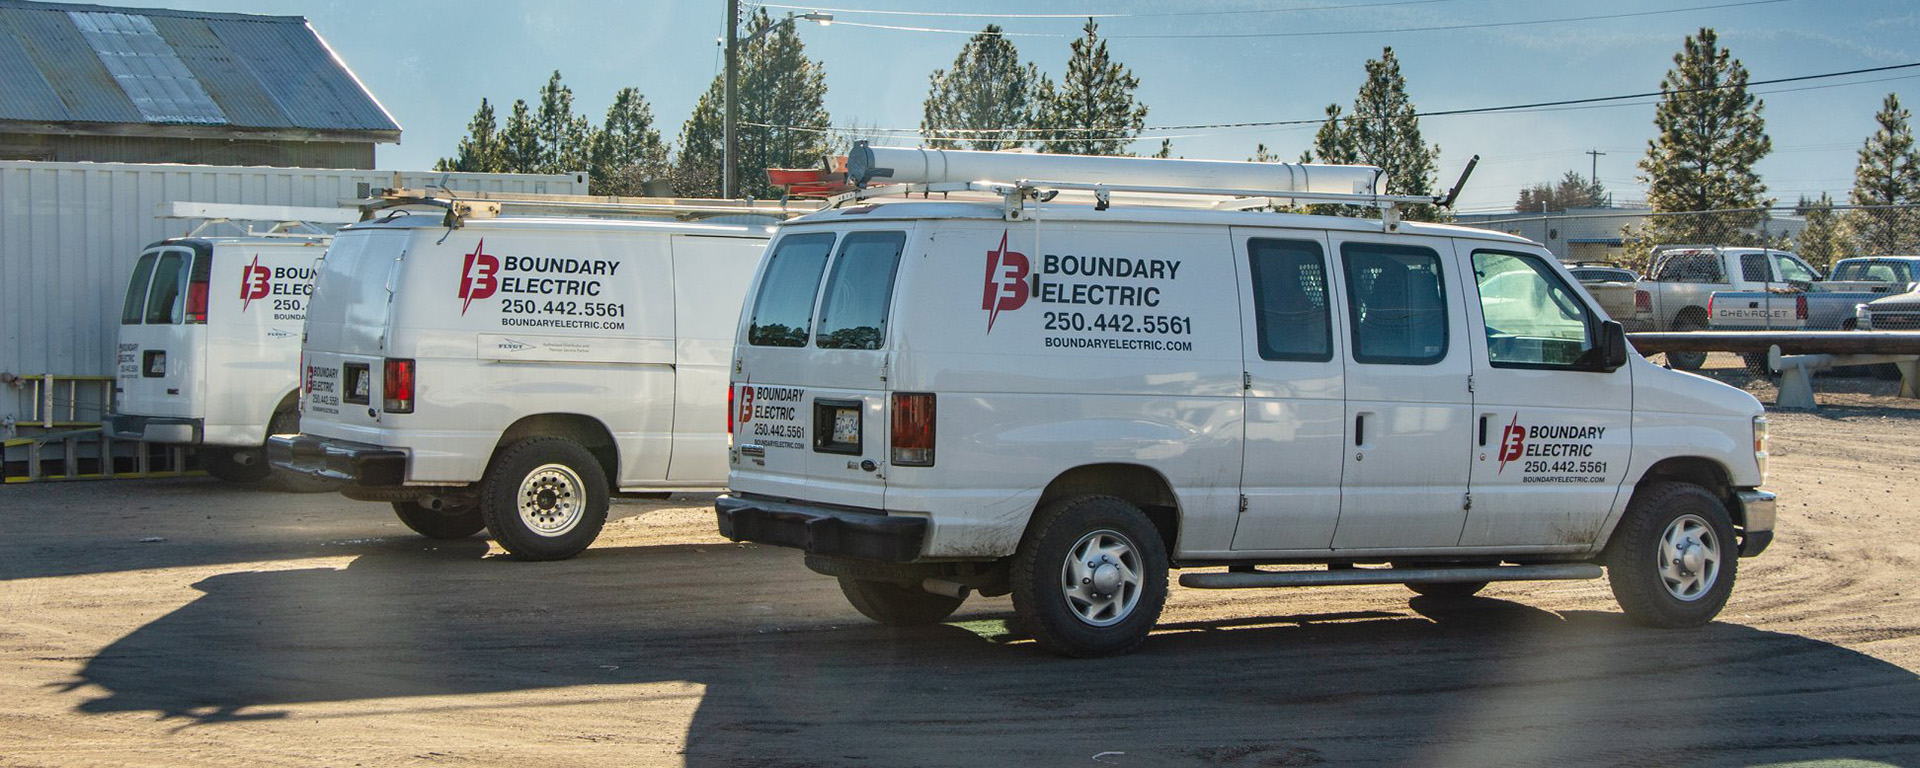 Boundary Electric service vans parked